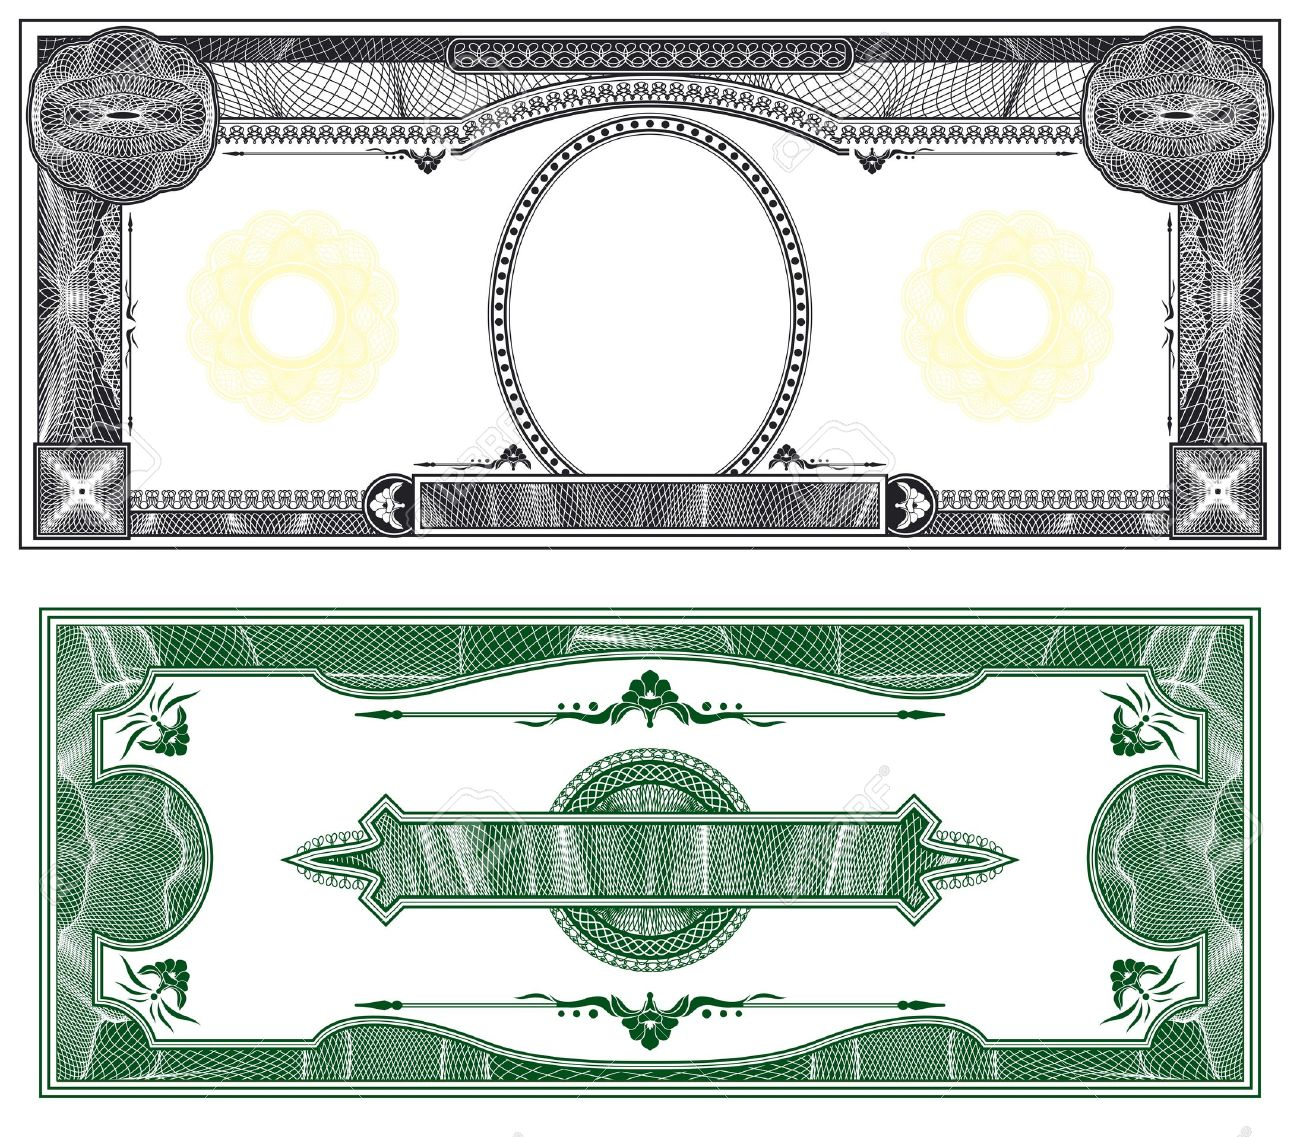 Blank banknote layout with obverse and reverse based on dollar bill Stock Photo - 8109064